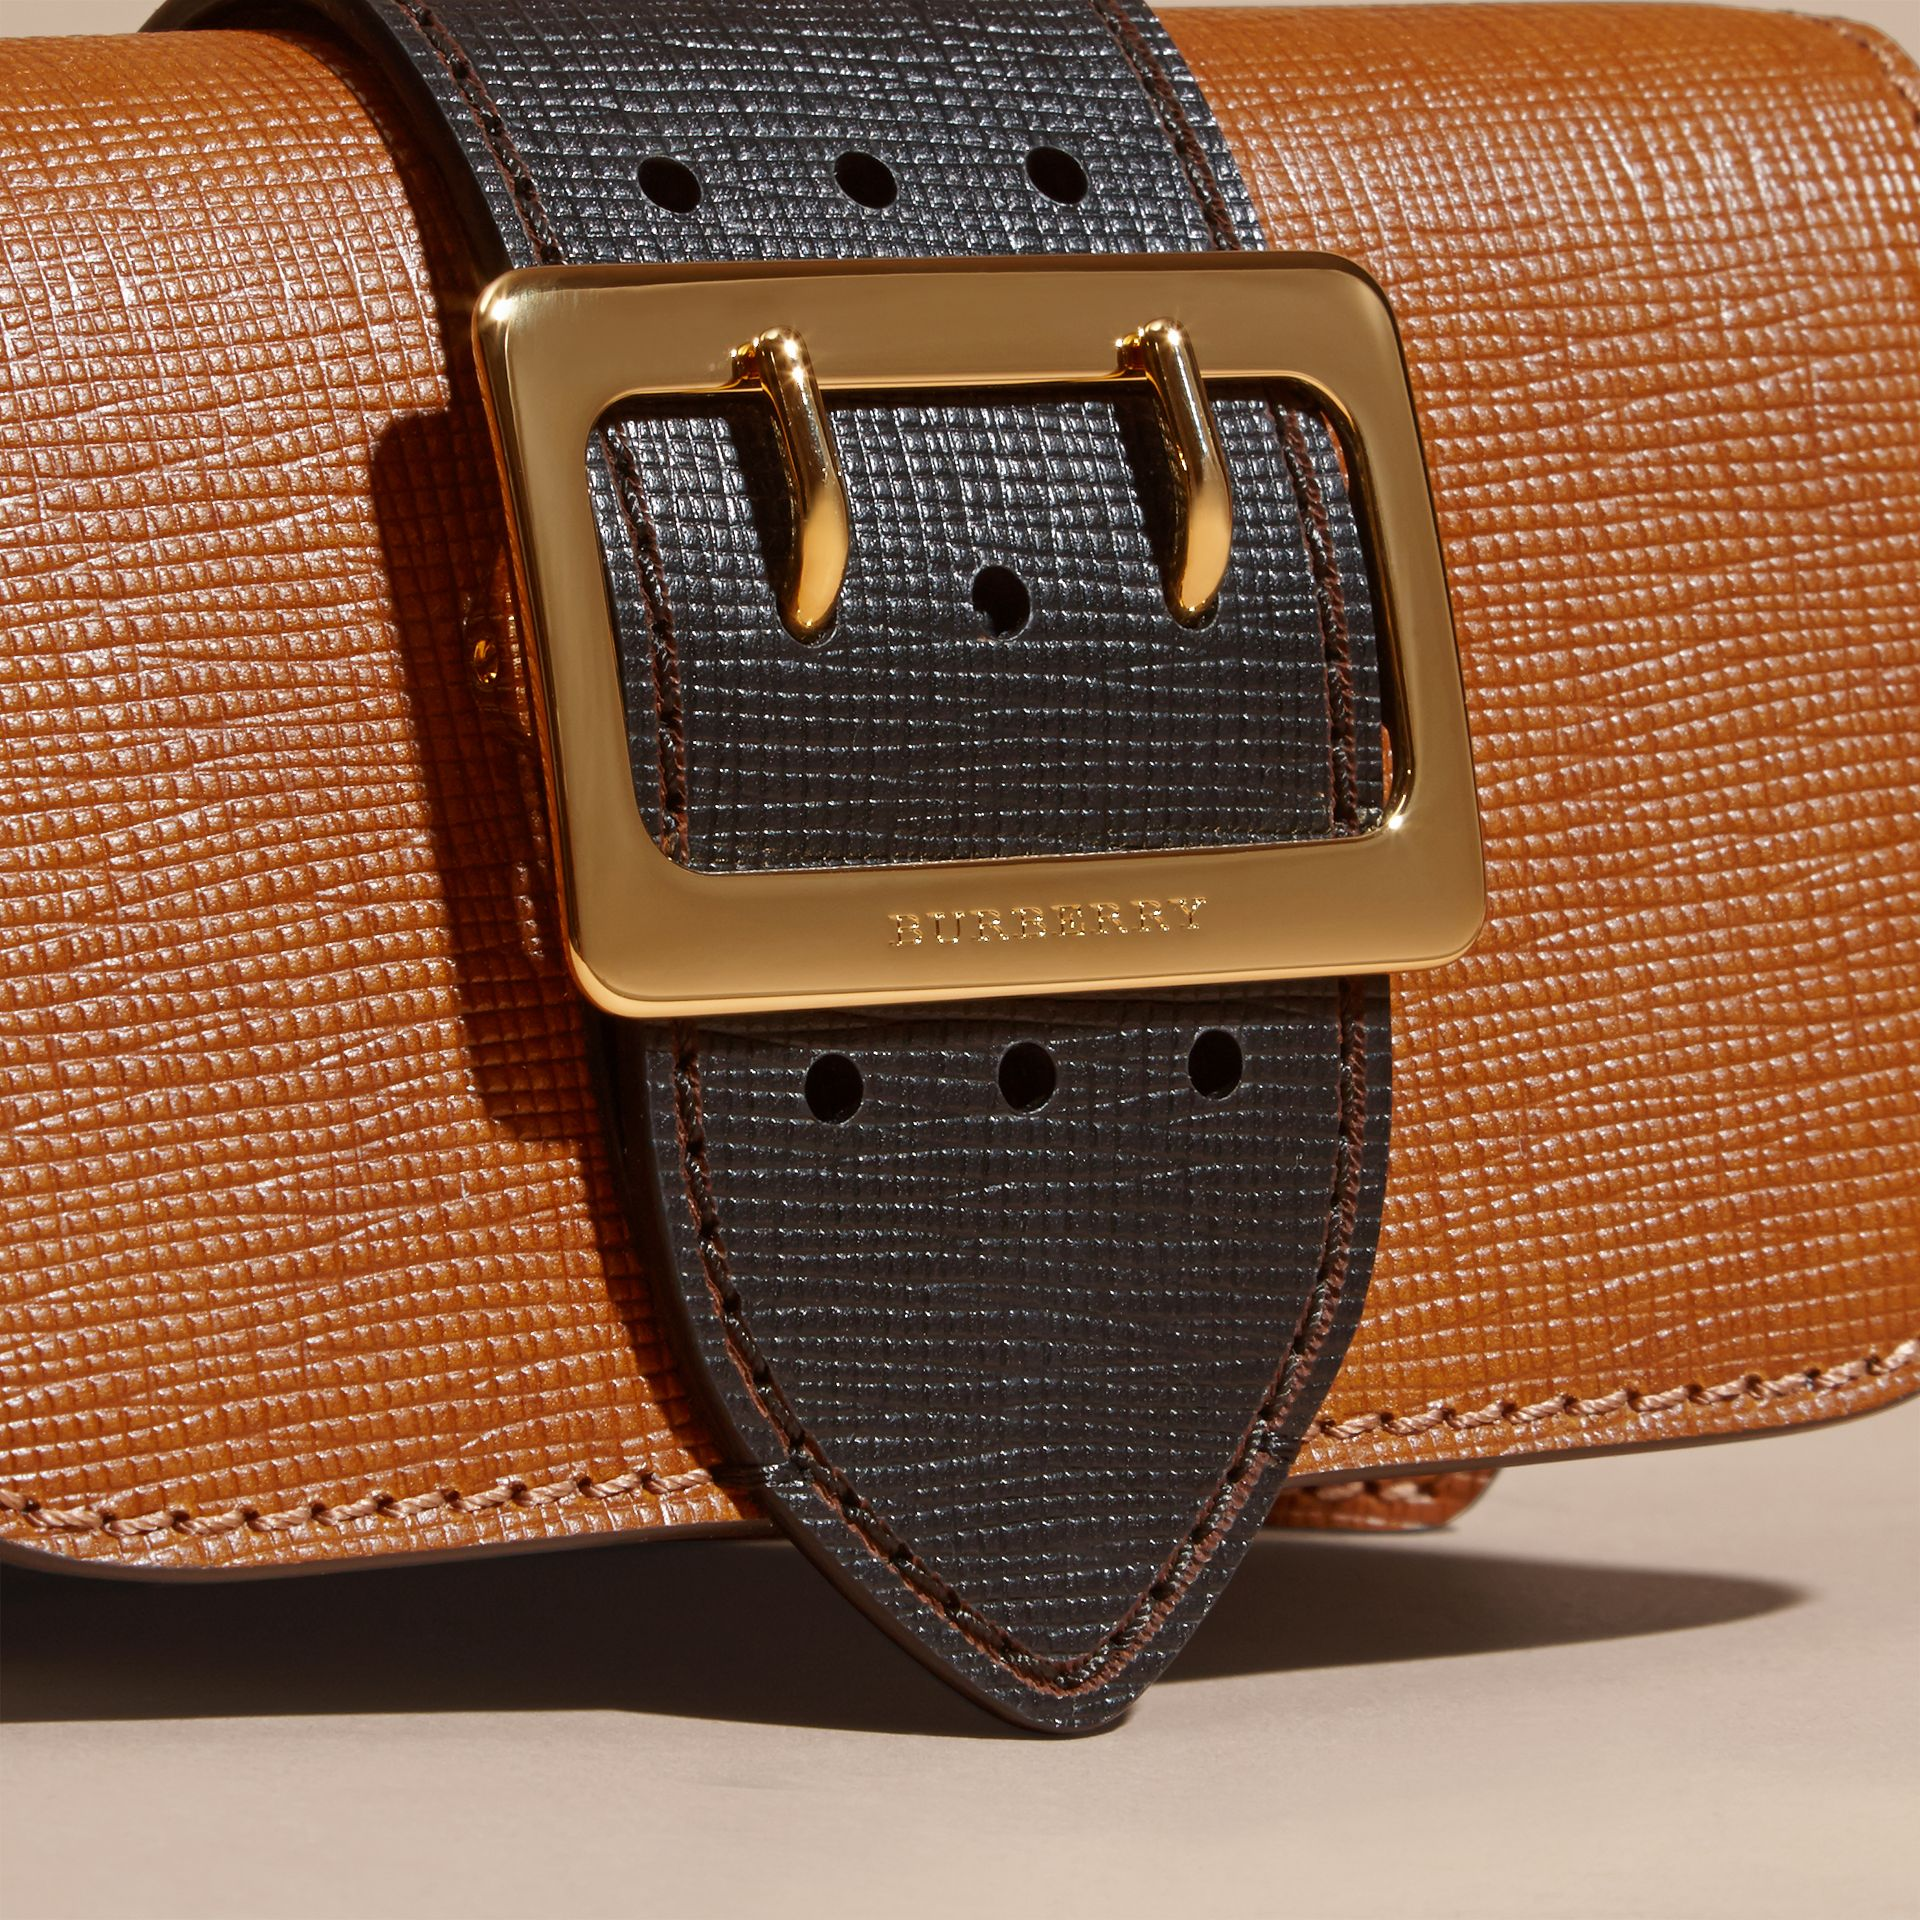 Tan / black The Small Buckle Bag in Grainy Leather - gallery image 2